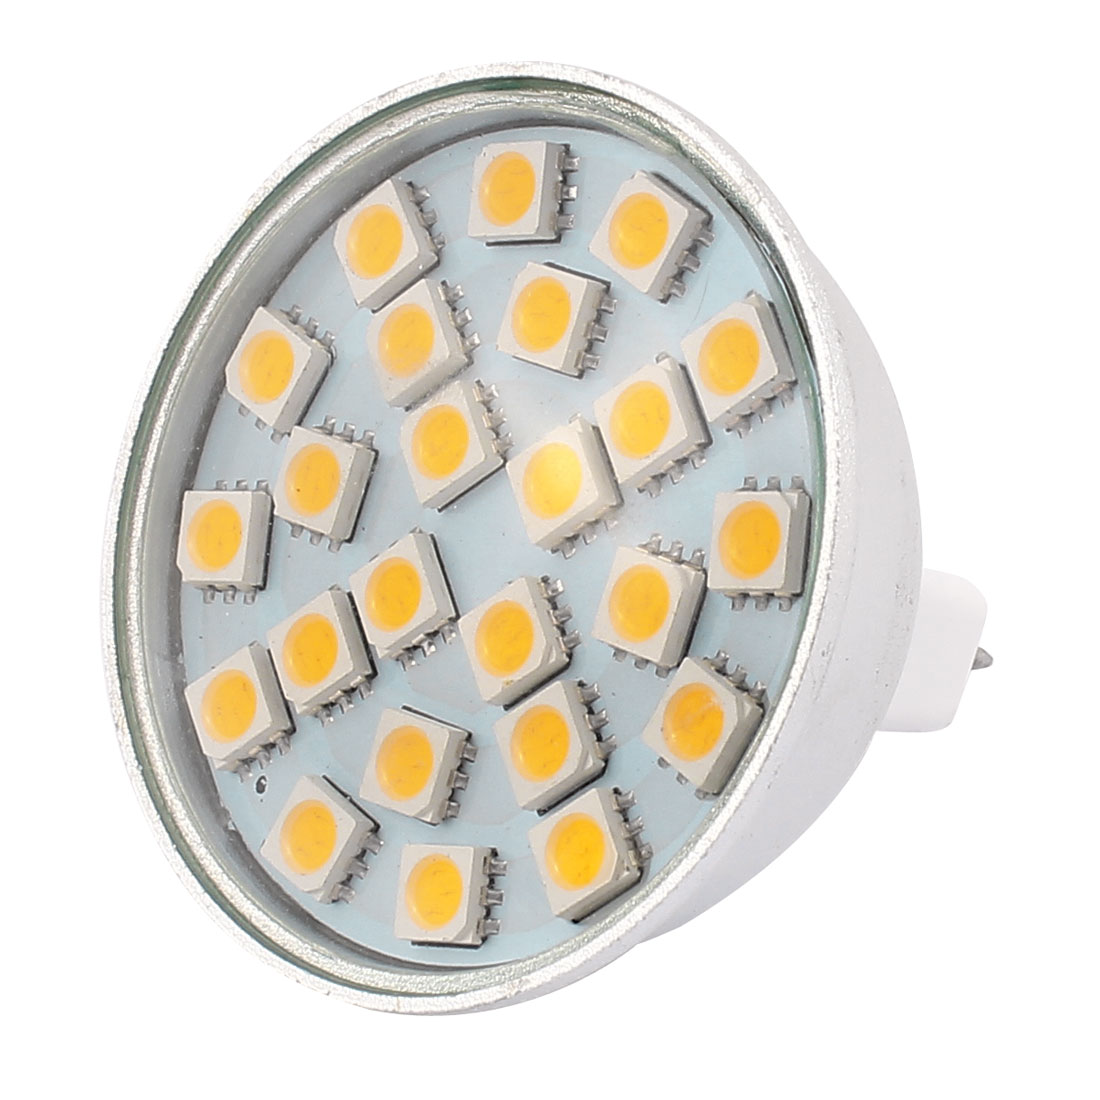 MR16 SMD5050 24LEDs Aluminum Energy Saving LED Lamp Bulb Warm White AC 220V 3W